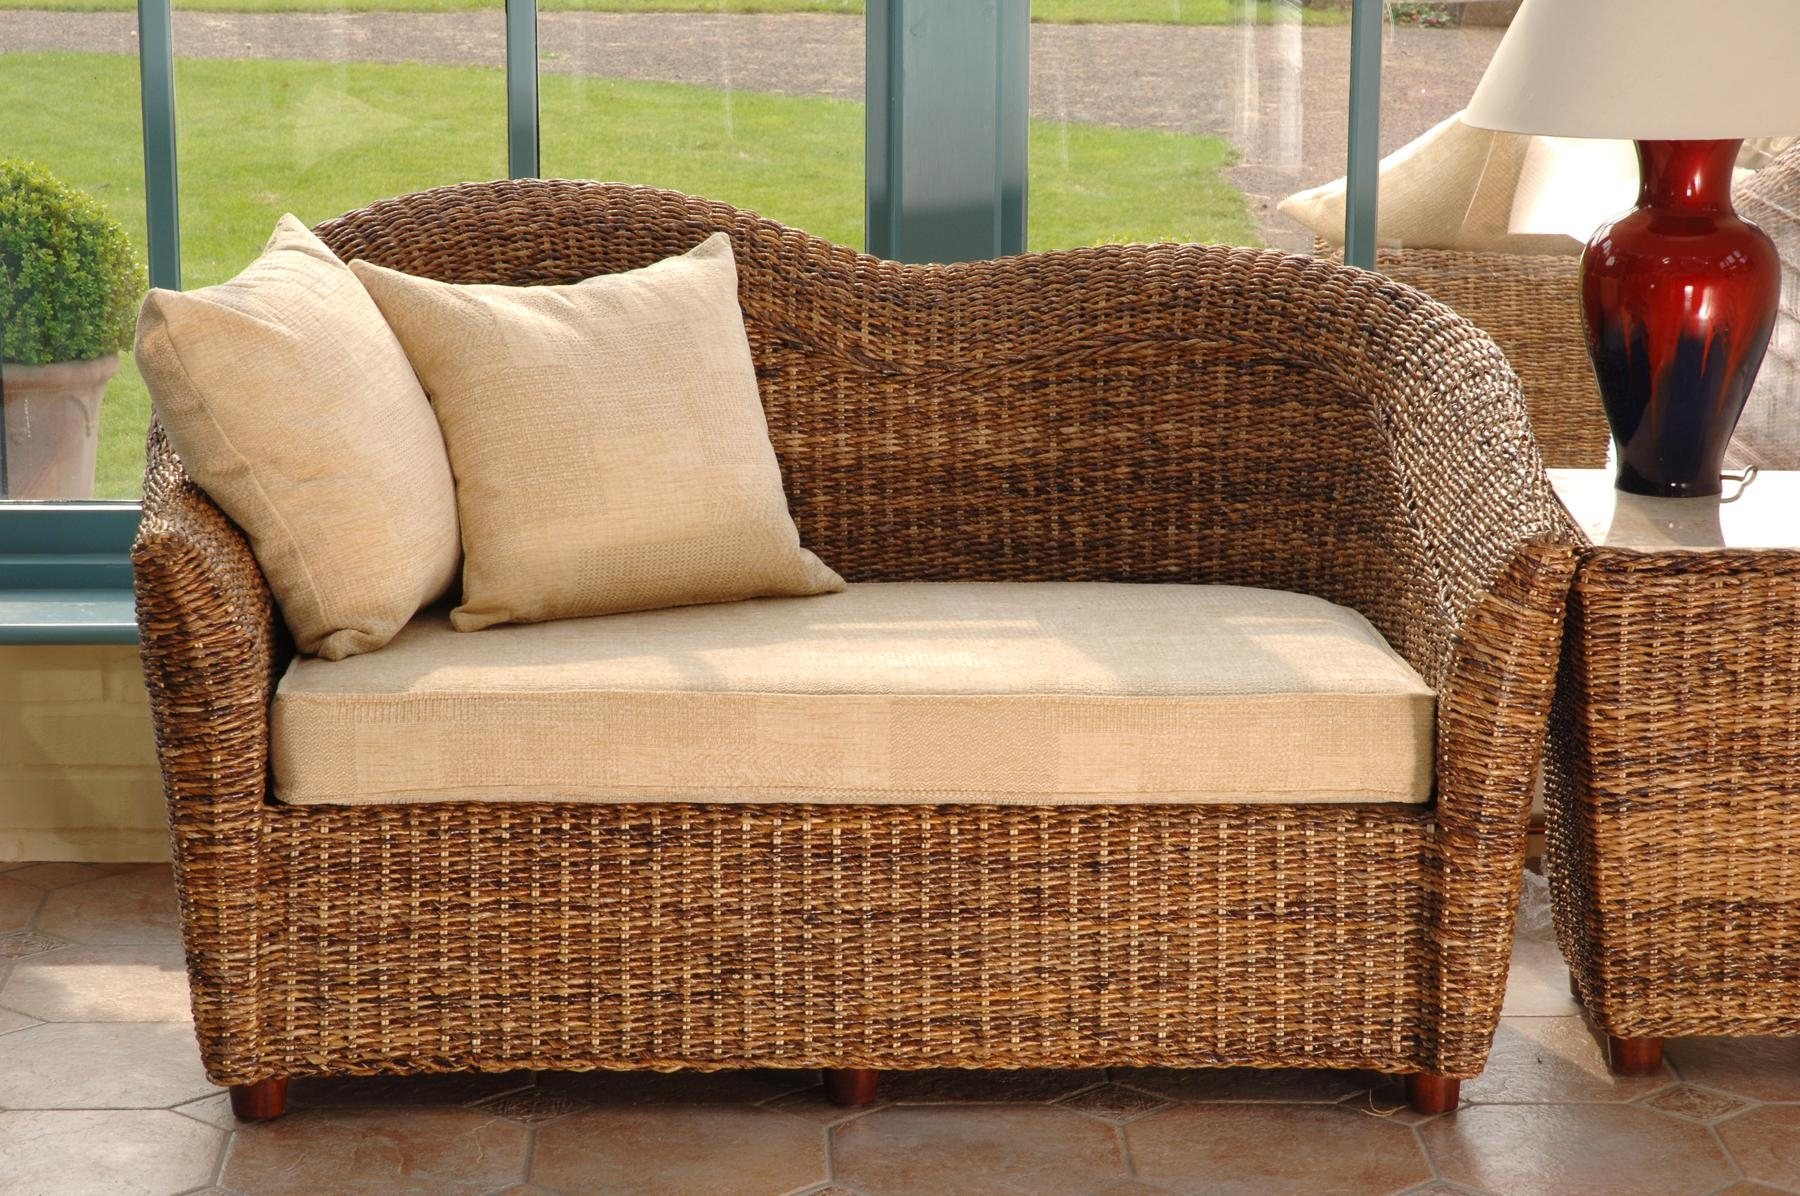 Cane Furniture: Value For Money Deal Always – Goodworksfurniture Throughout Bambo Sofas (View 5 of 22)